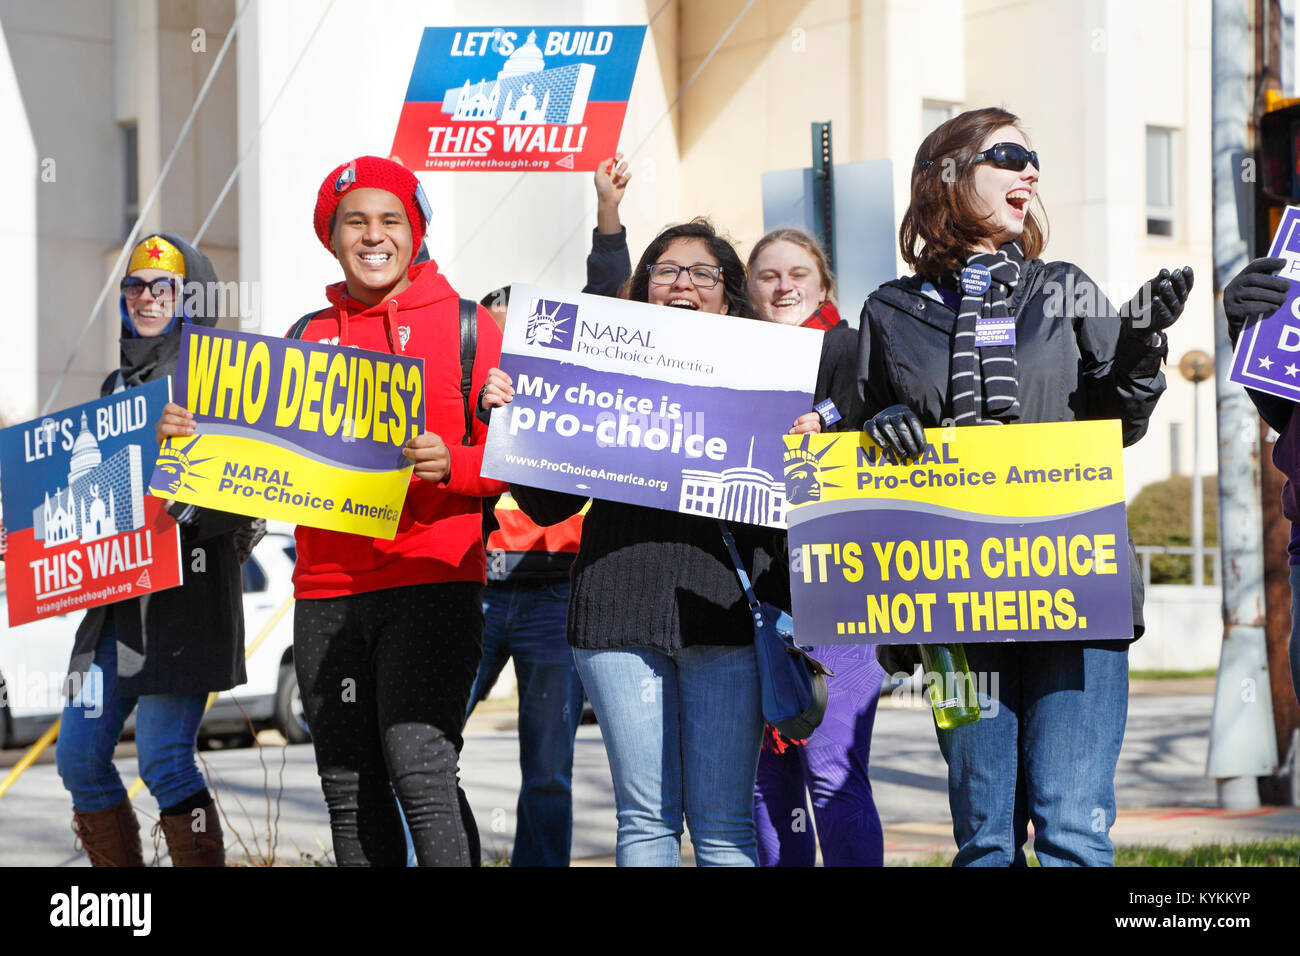 Raleigh, North Carolina. 13th January, 2018. Pro-Choice demonstration during a Pro-Life rally. Stock Photo